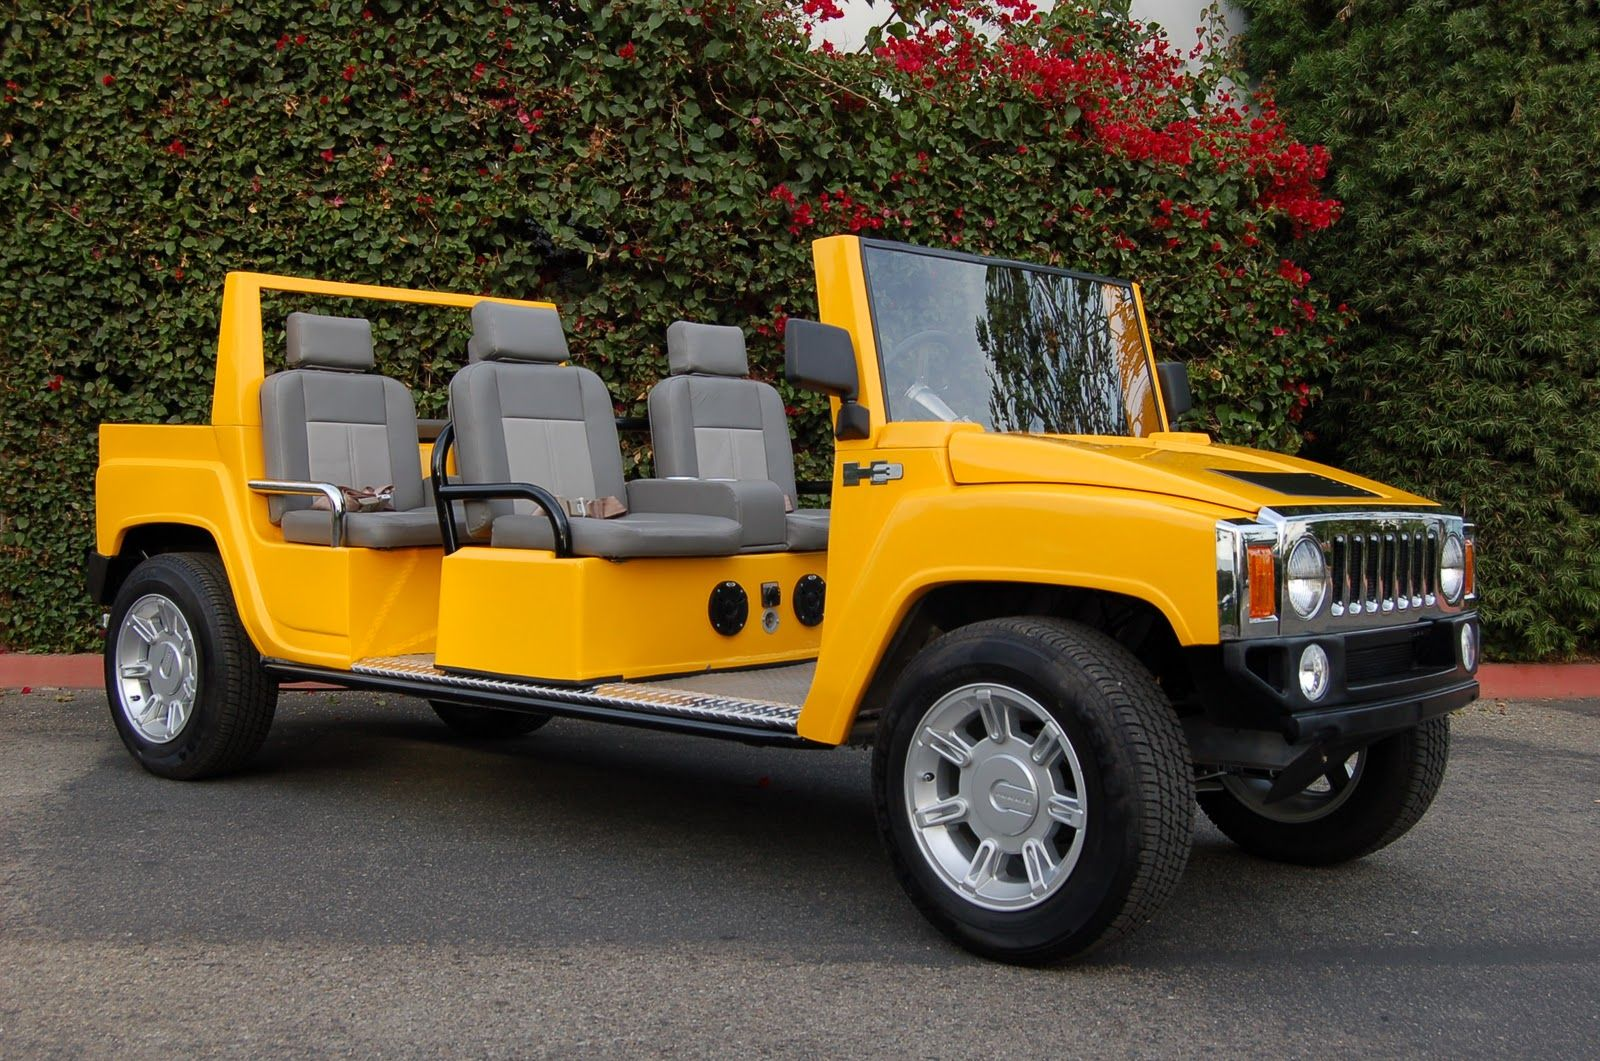 Sports Car Hummer Wallpaper Pictures Images Snaps Photo